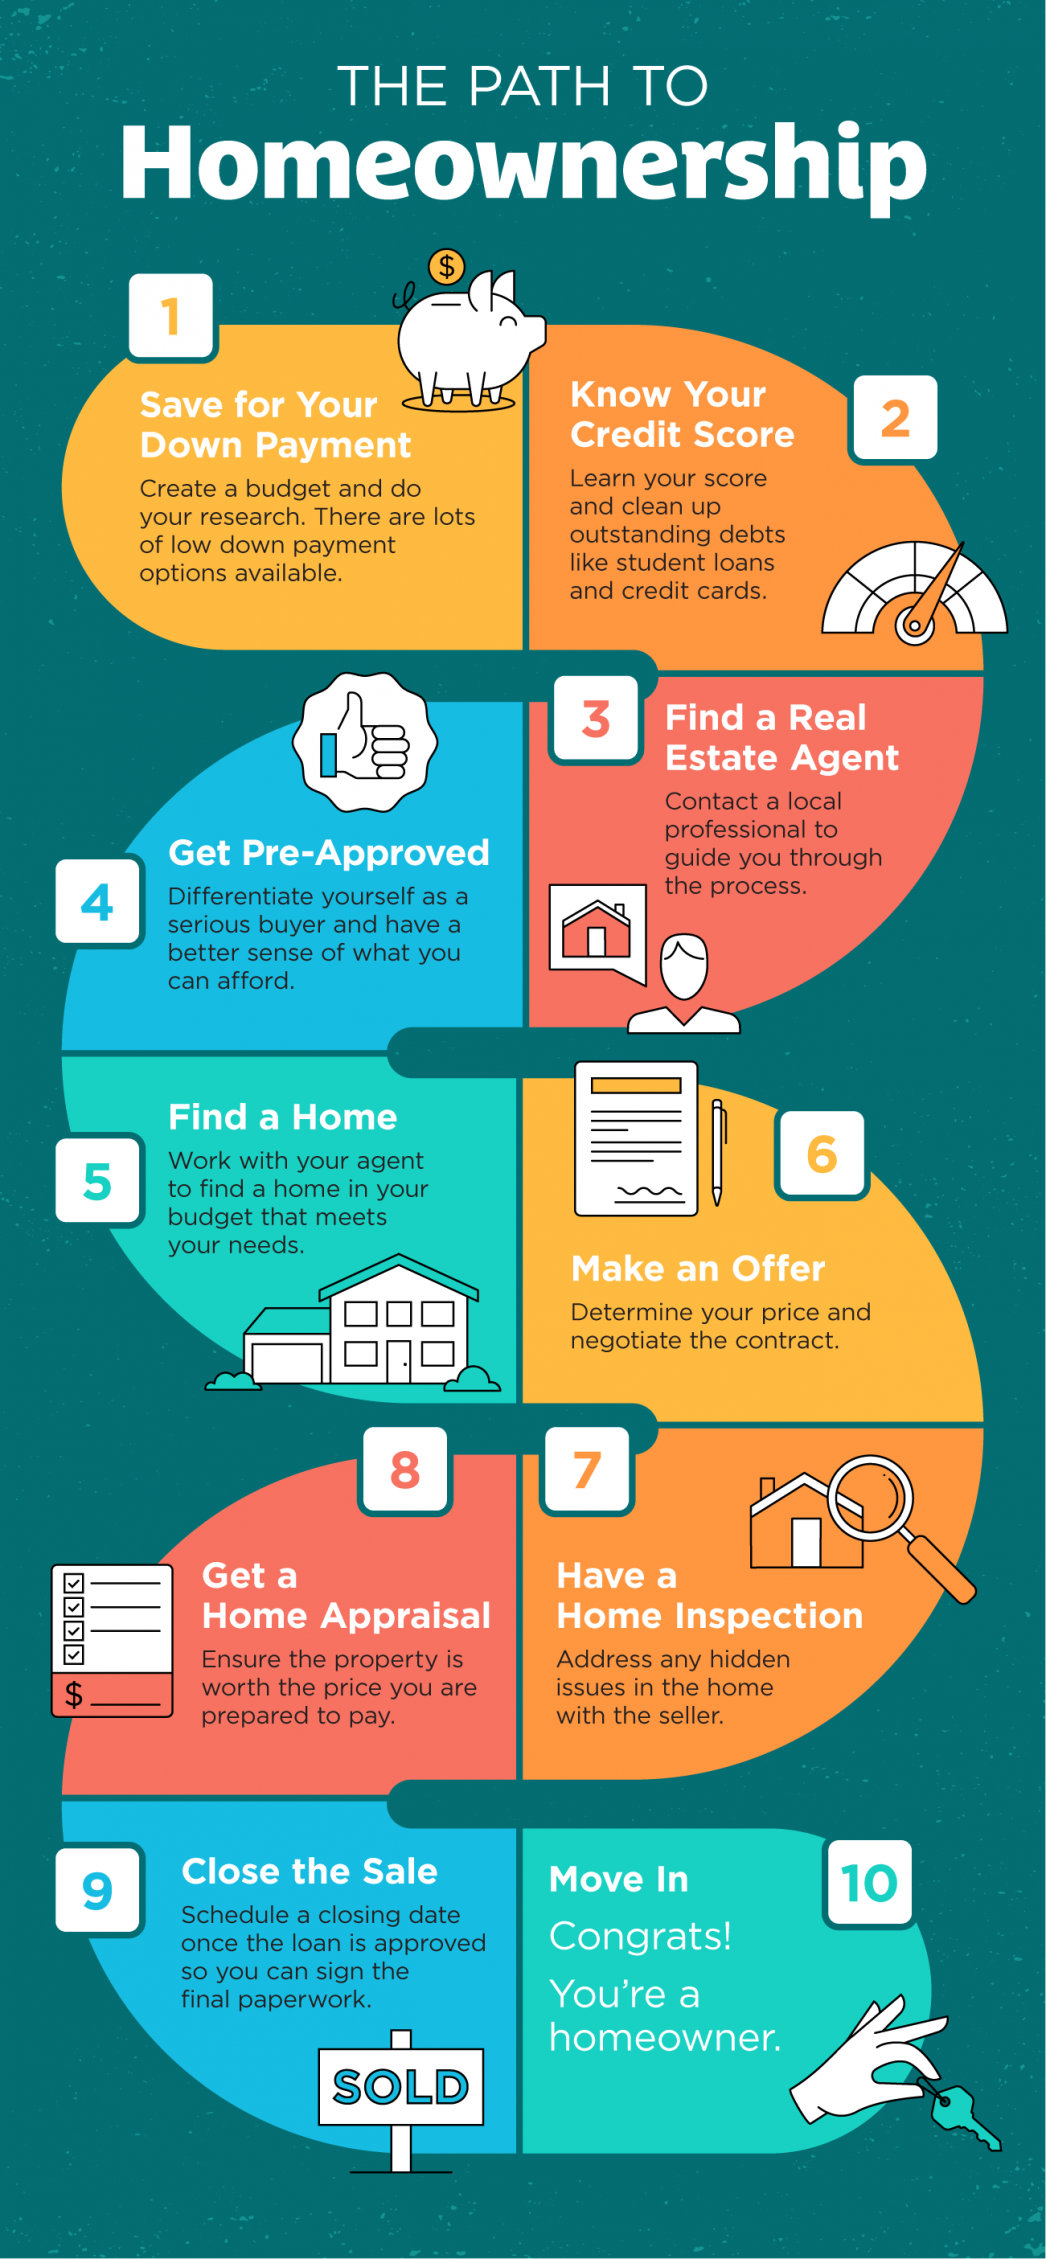 The Path to Homeownership [INFOGRAPHIC] | MyKCM